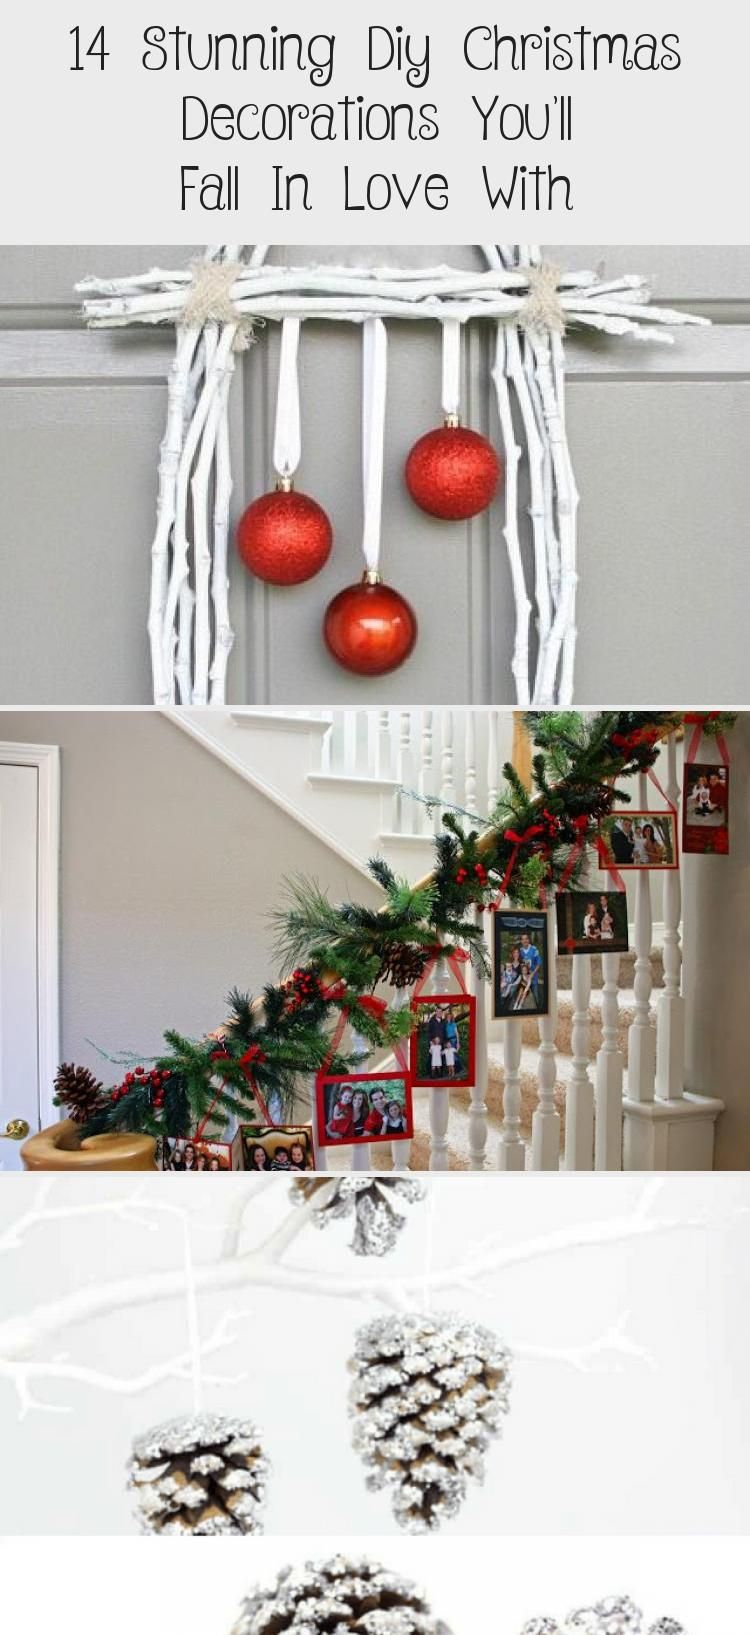 Home decor is an integral part of christmas. These DIY home decor ideas for christmas are simply amazing. Why to spend money on expensive christmas decorations when you can decorate your home for christmas at a fraction of cost with these diy christmas decor ideas for home. #christmas #homedecor #christmasdecorations #christmasdecorideas #diyhomedecor #homedecorideas via@offbeatbros #HomeDecorDIYGifts